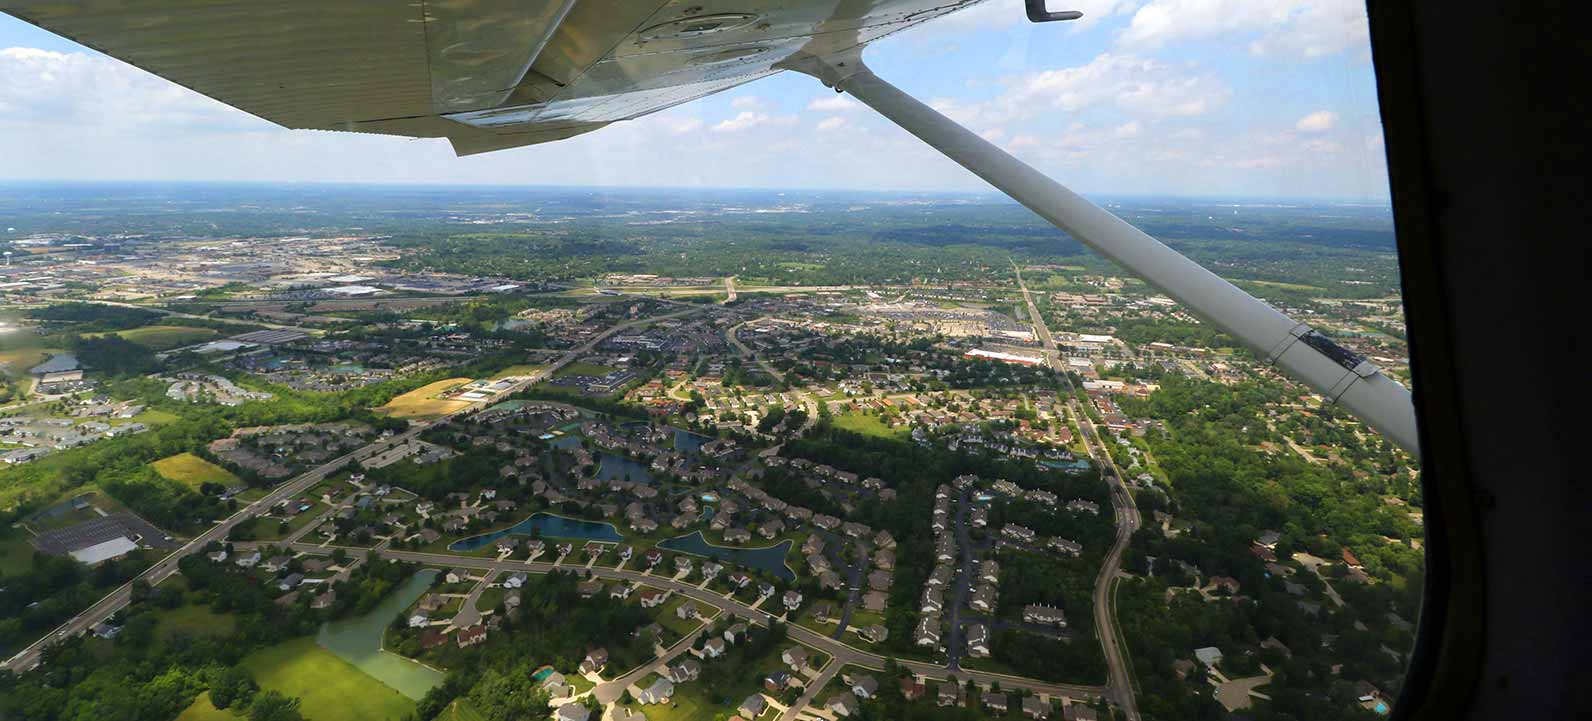 flying over neighborhood